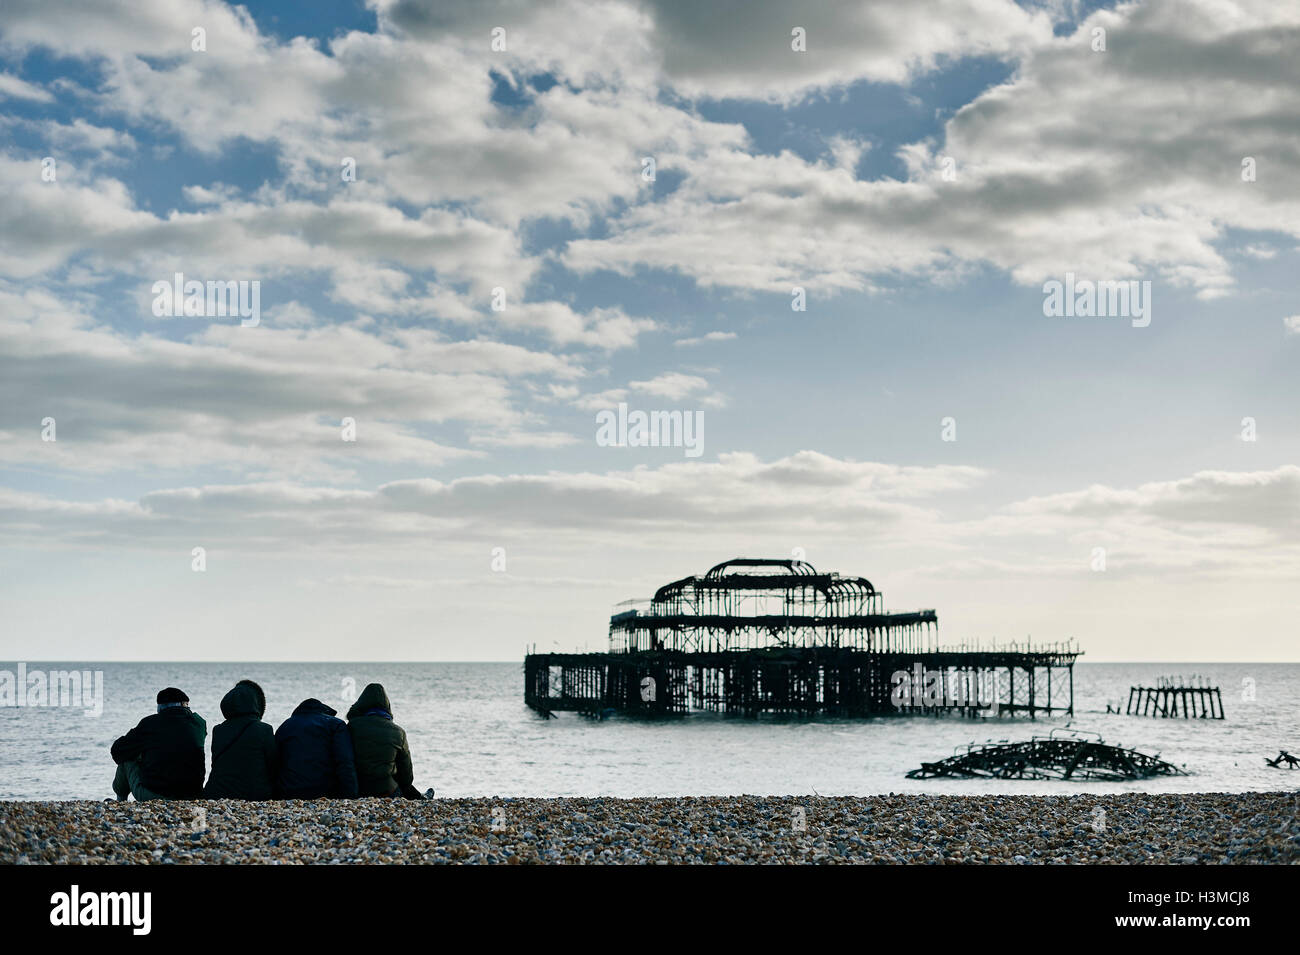 Tourists relaxing on Brighton beach, England - Stock Image